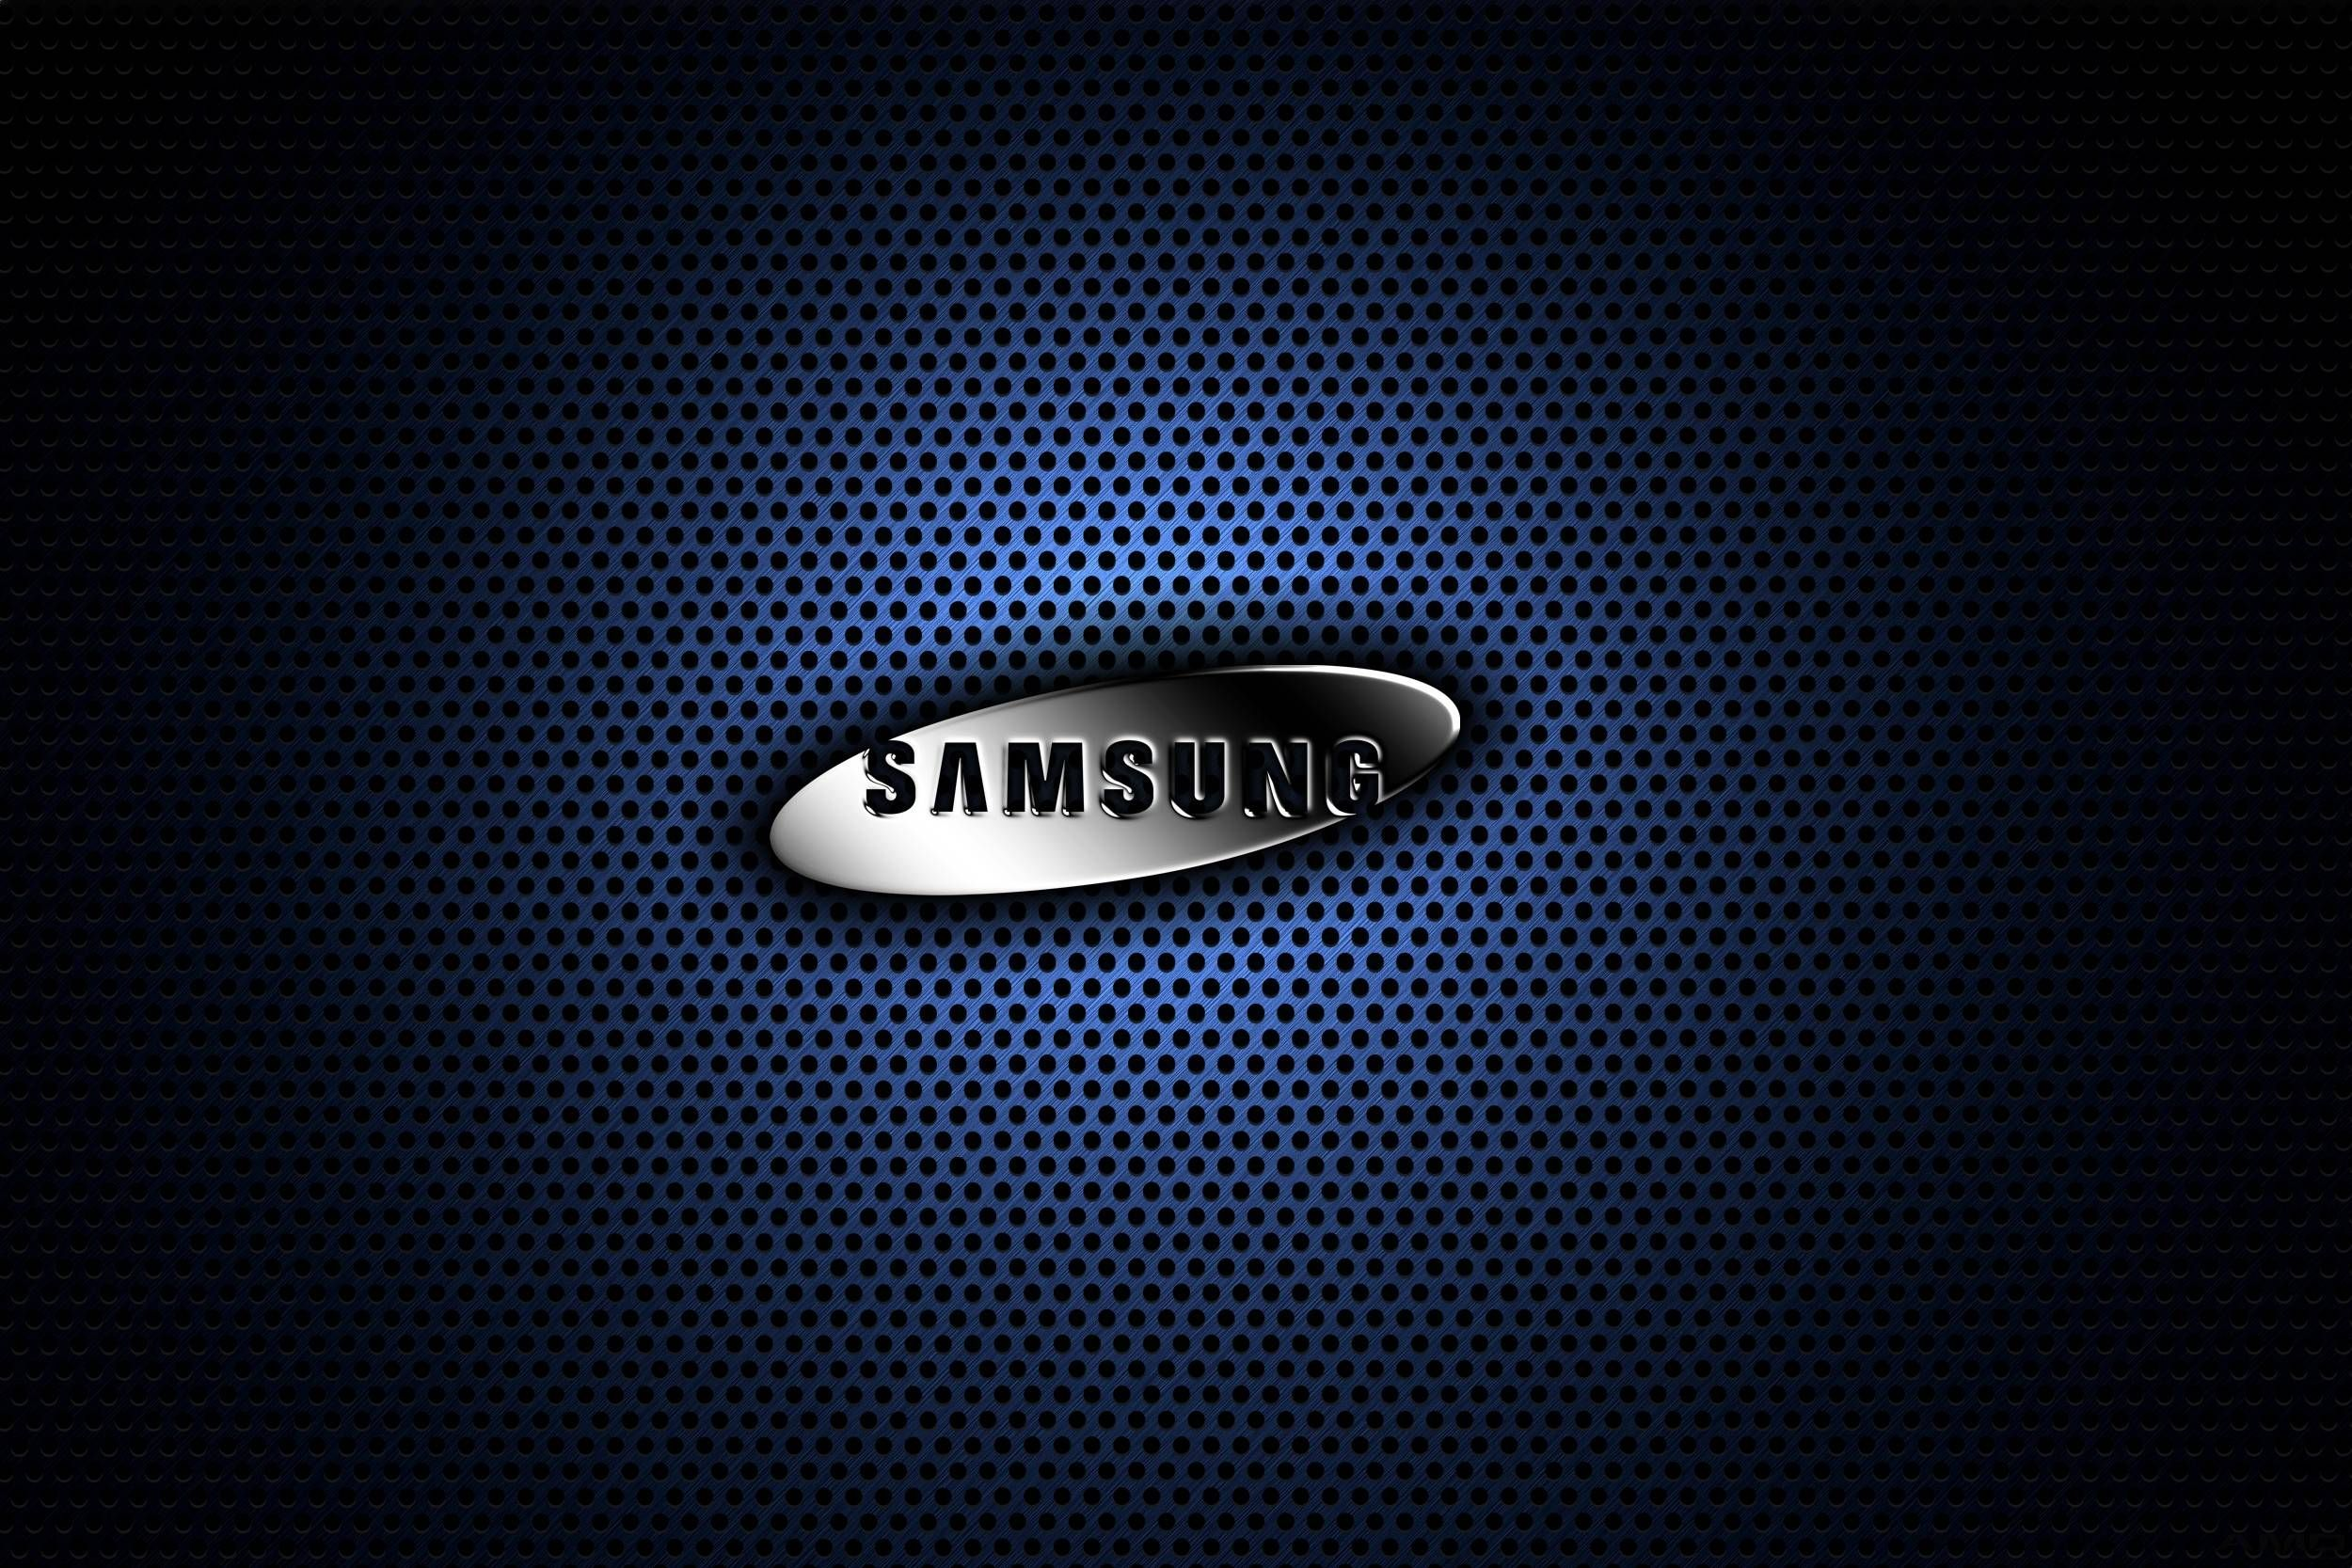 Samsung Logo Wallpapers Wallpaper Samsung Logo Cool Wallpapers For Samsung Samsung Galaxy Wallpaper